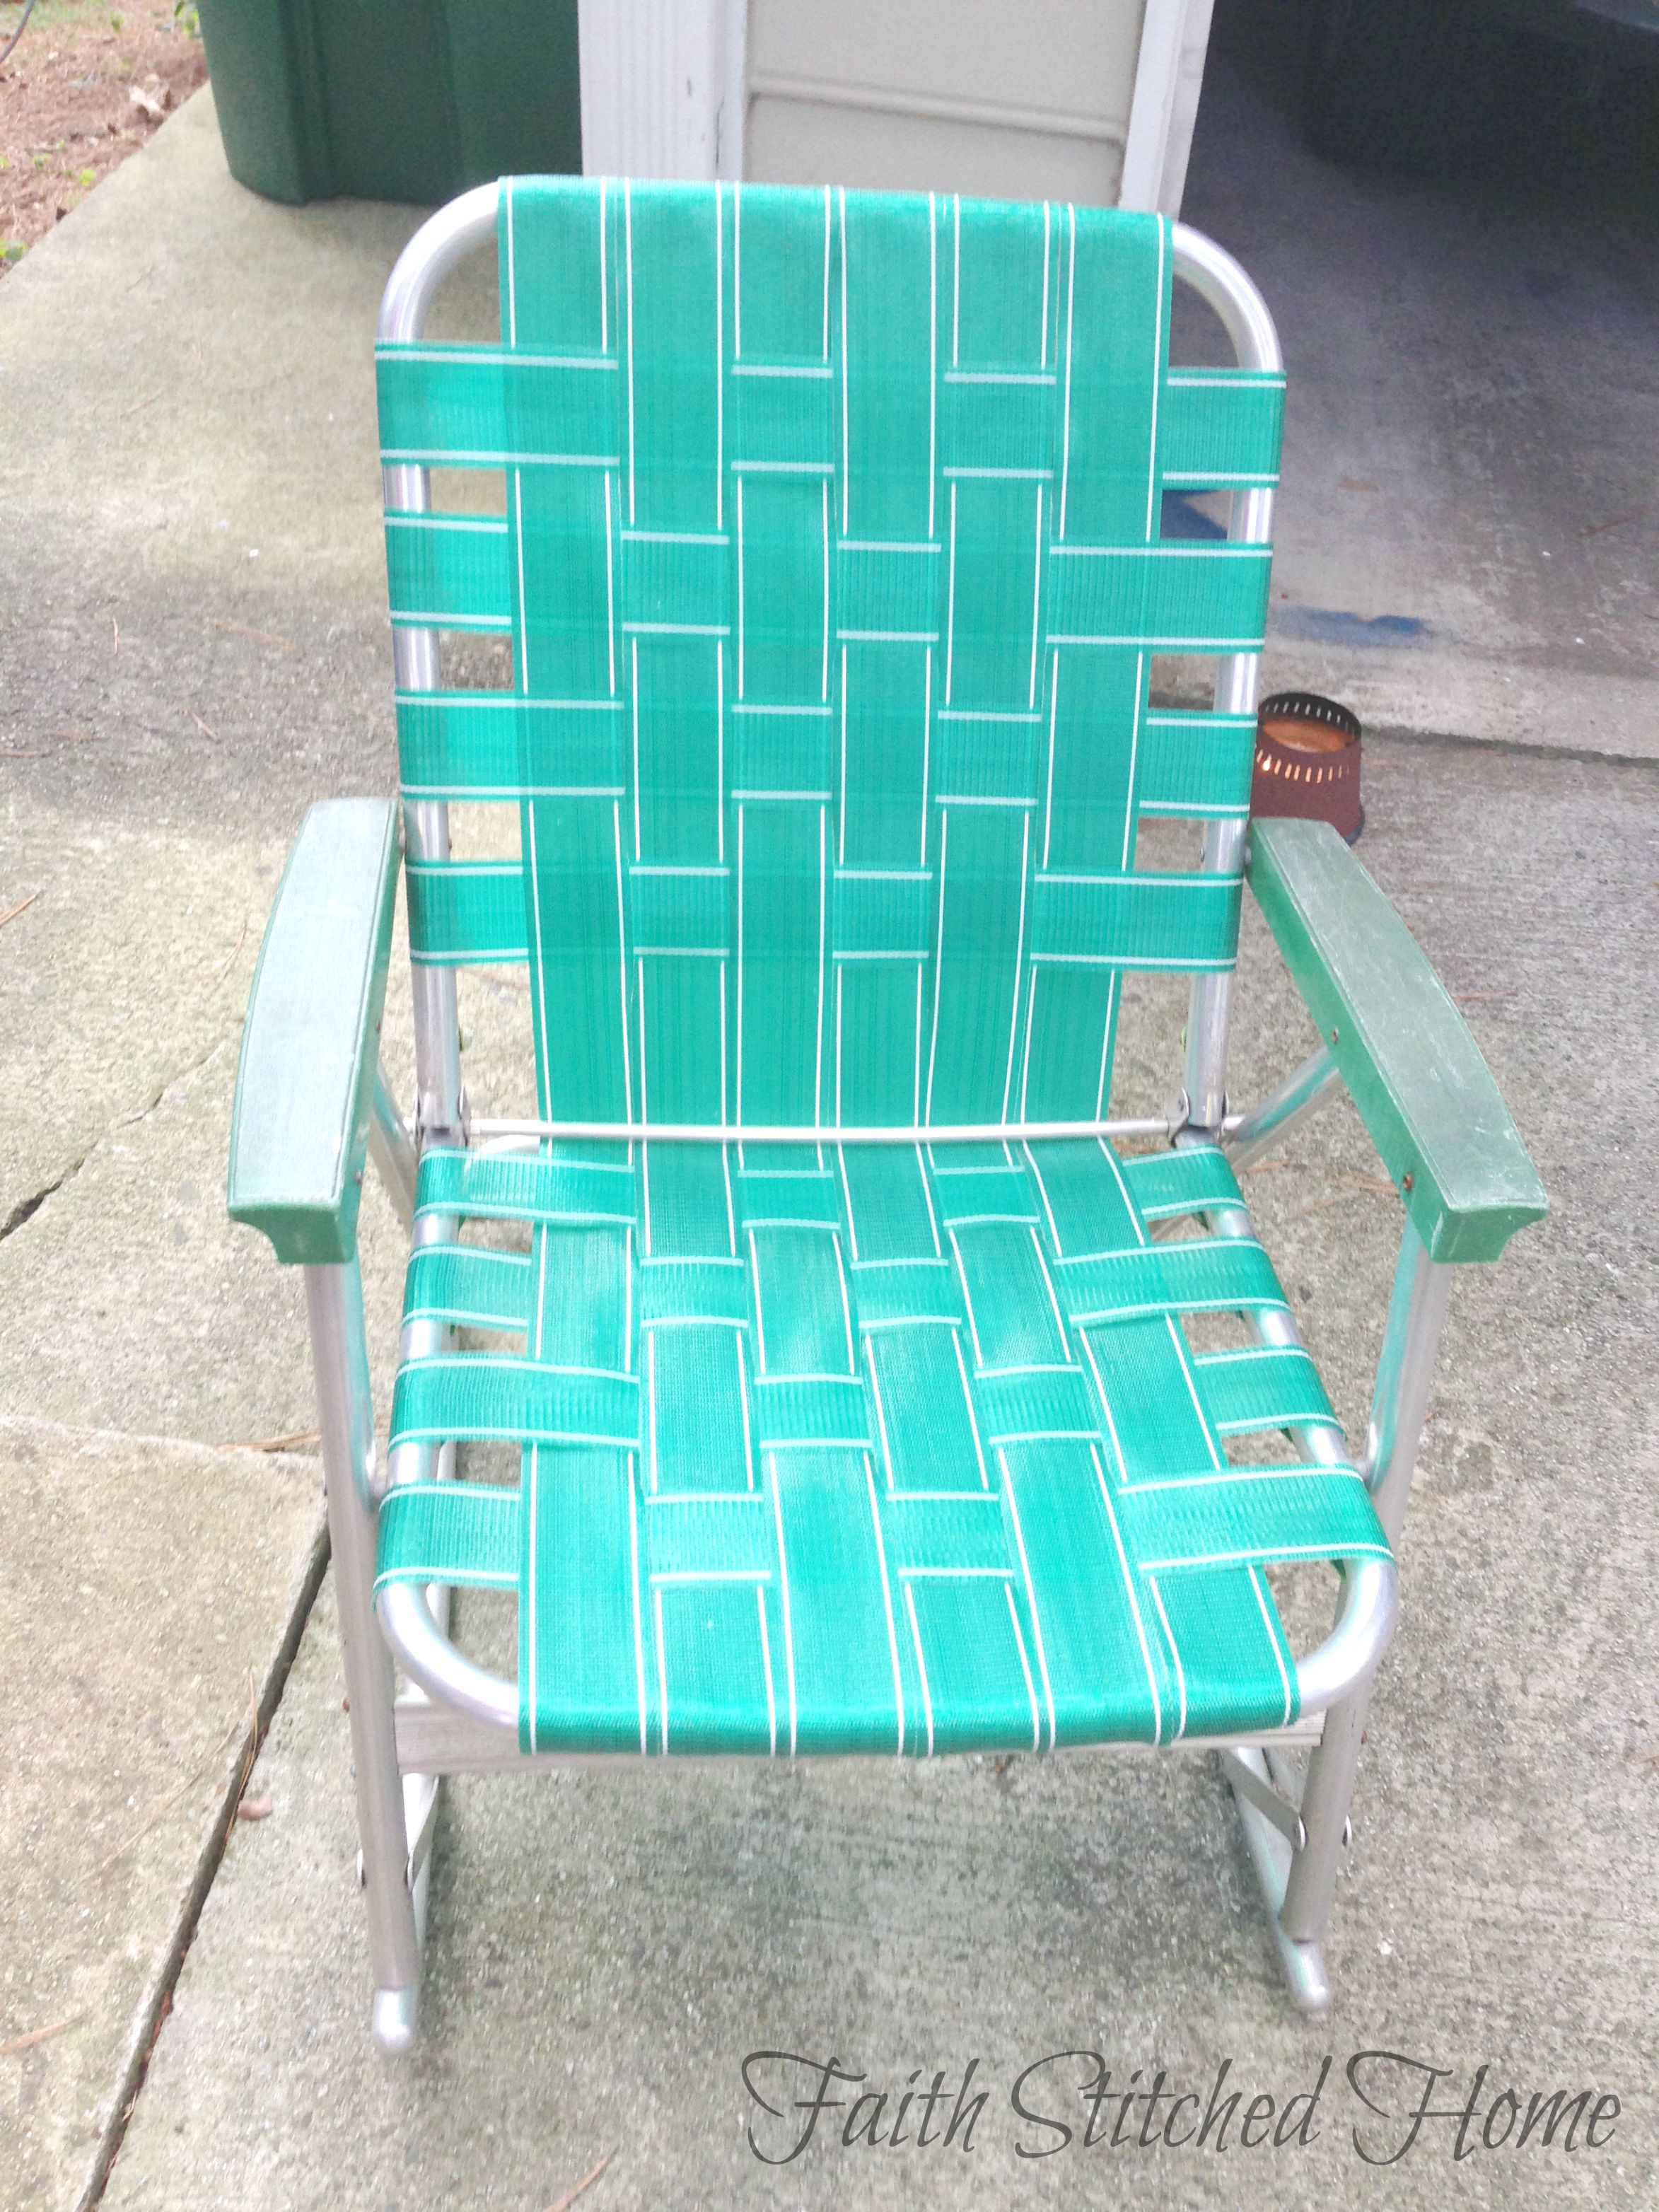 repairing a vintage webbed lawn chair | faith stitched home